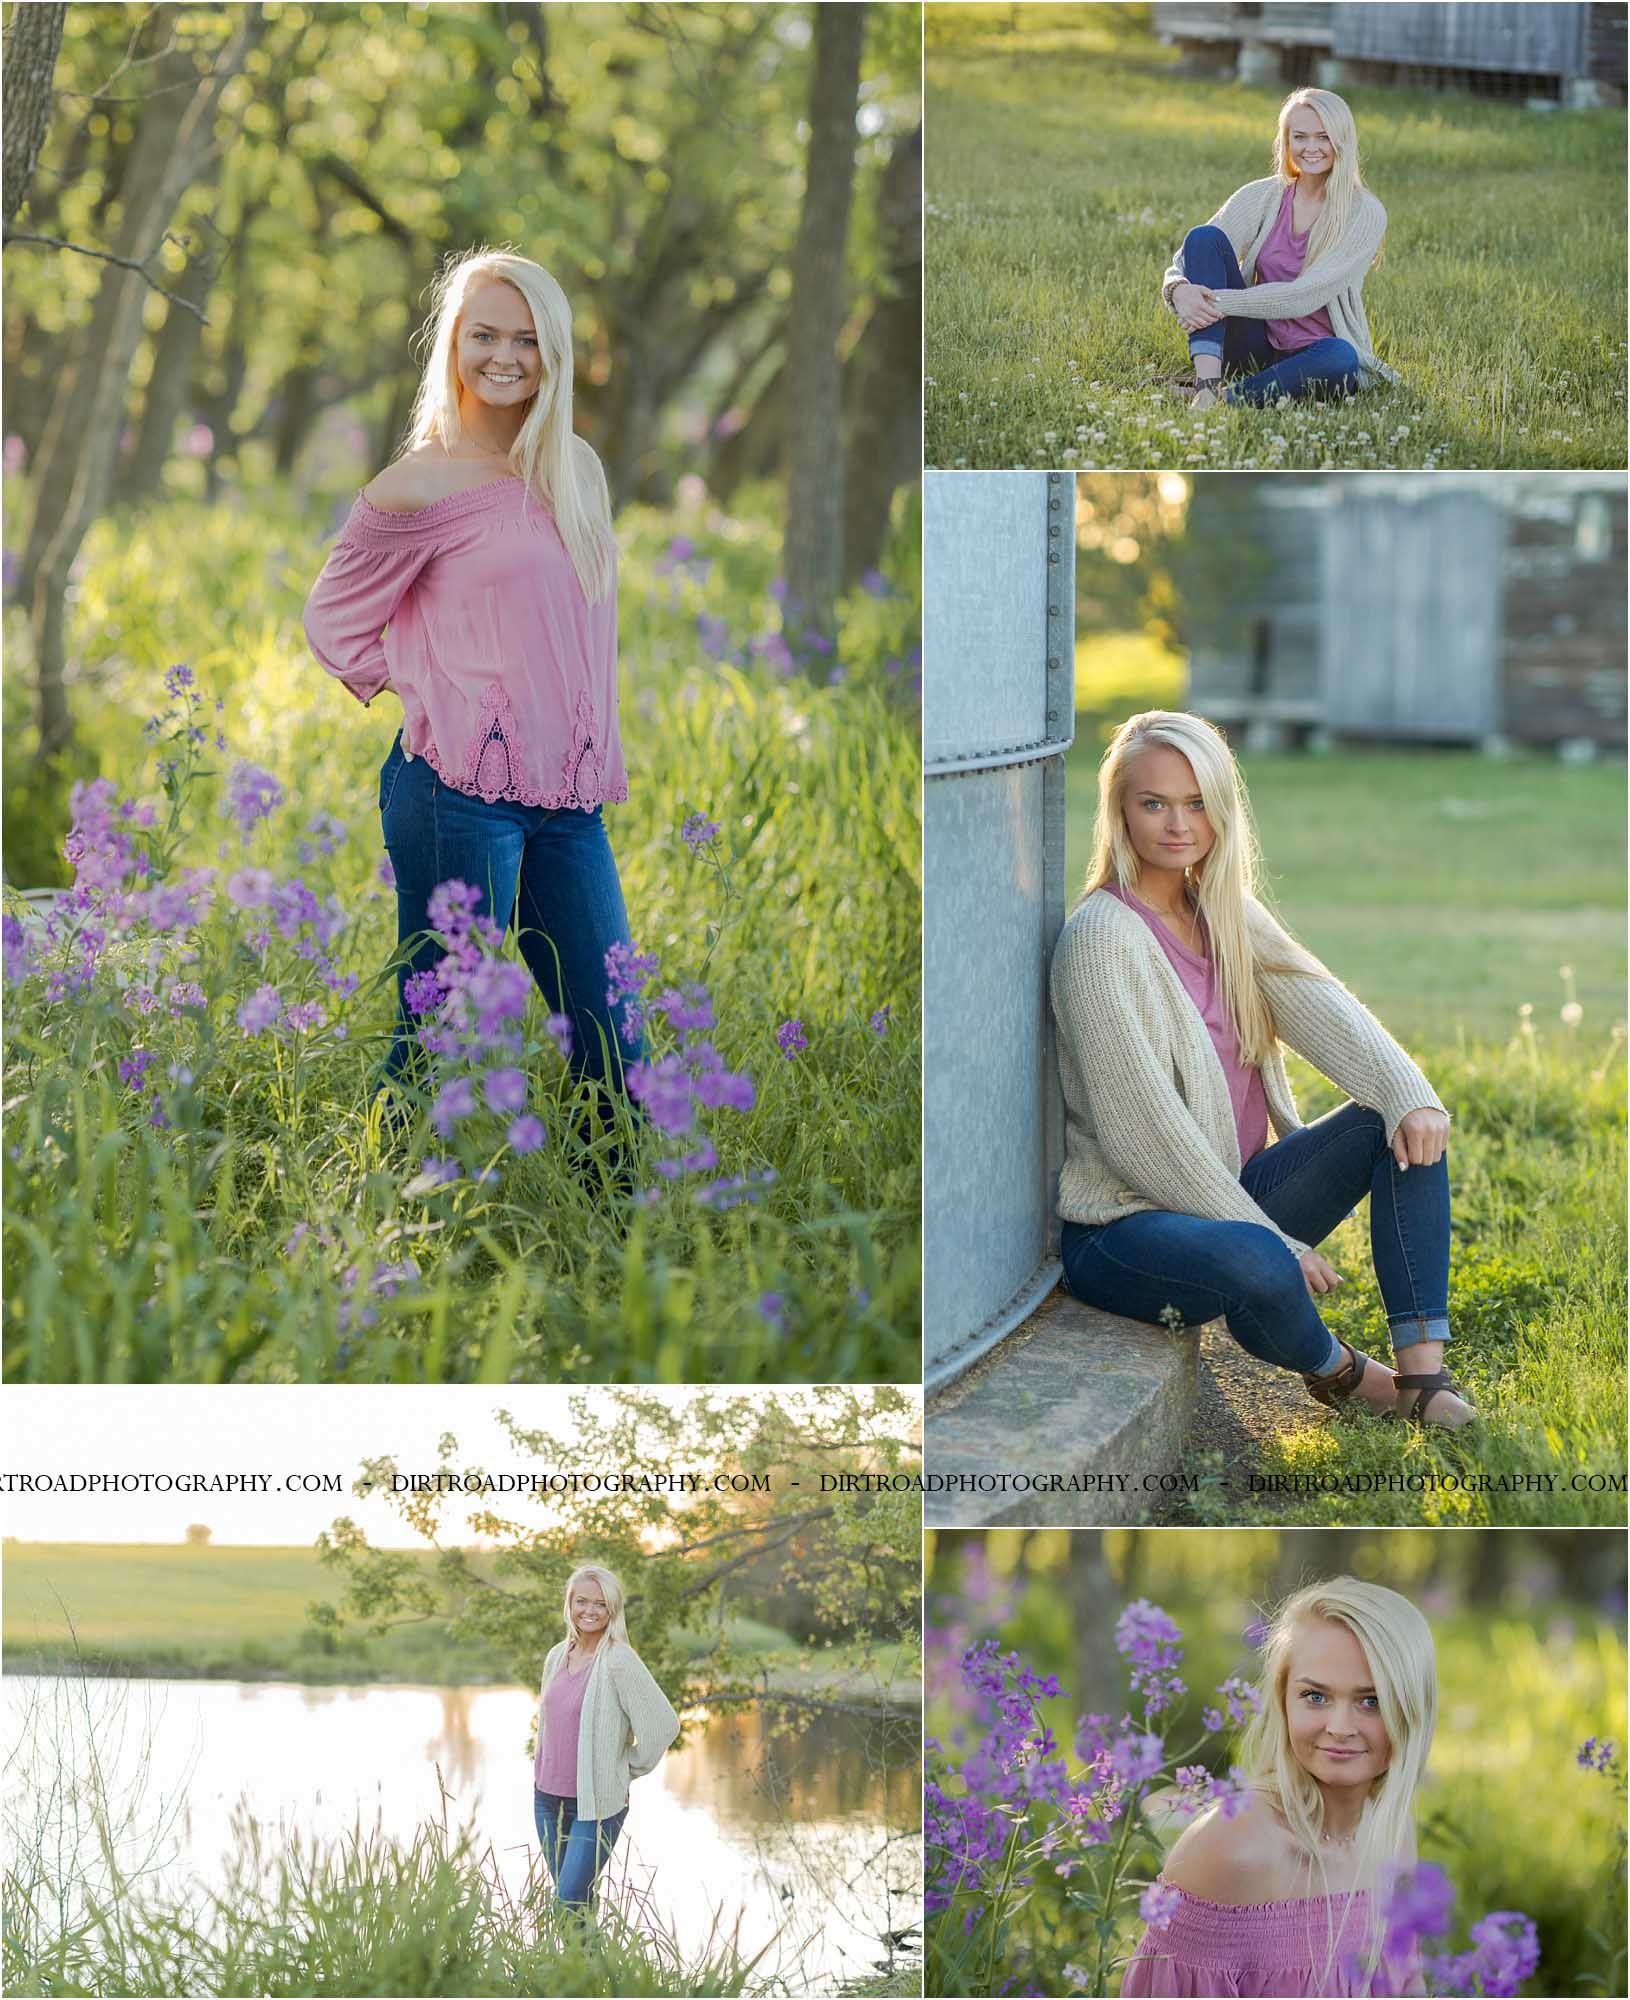 images of high school girl senior photos named caitlin sharkey of friend nebraska who went to friend high school in nebraska and is part of the class of 2020. photos were taken near swanton nebraska in saline county. photo includes purple wildflowers that bloom in the spring. photo taken at sunset with girl in denim jeans and pink lace flowy shirt with long blonde hair. surrounded by trees and tall green grass. photographer is kelsey homolka nerud of wilber nebraska who specializes in high school senior photography and senior pictures.